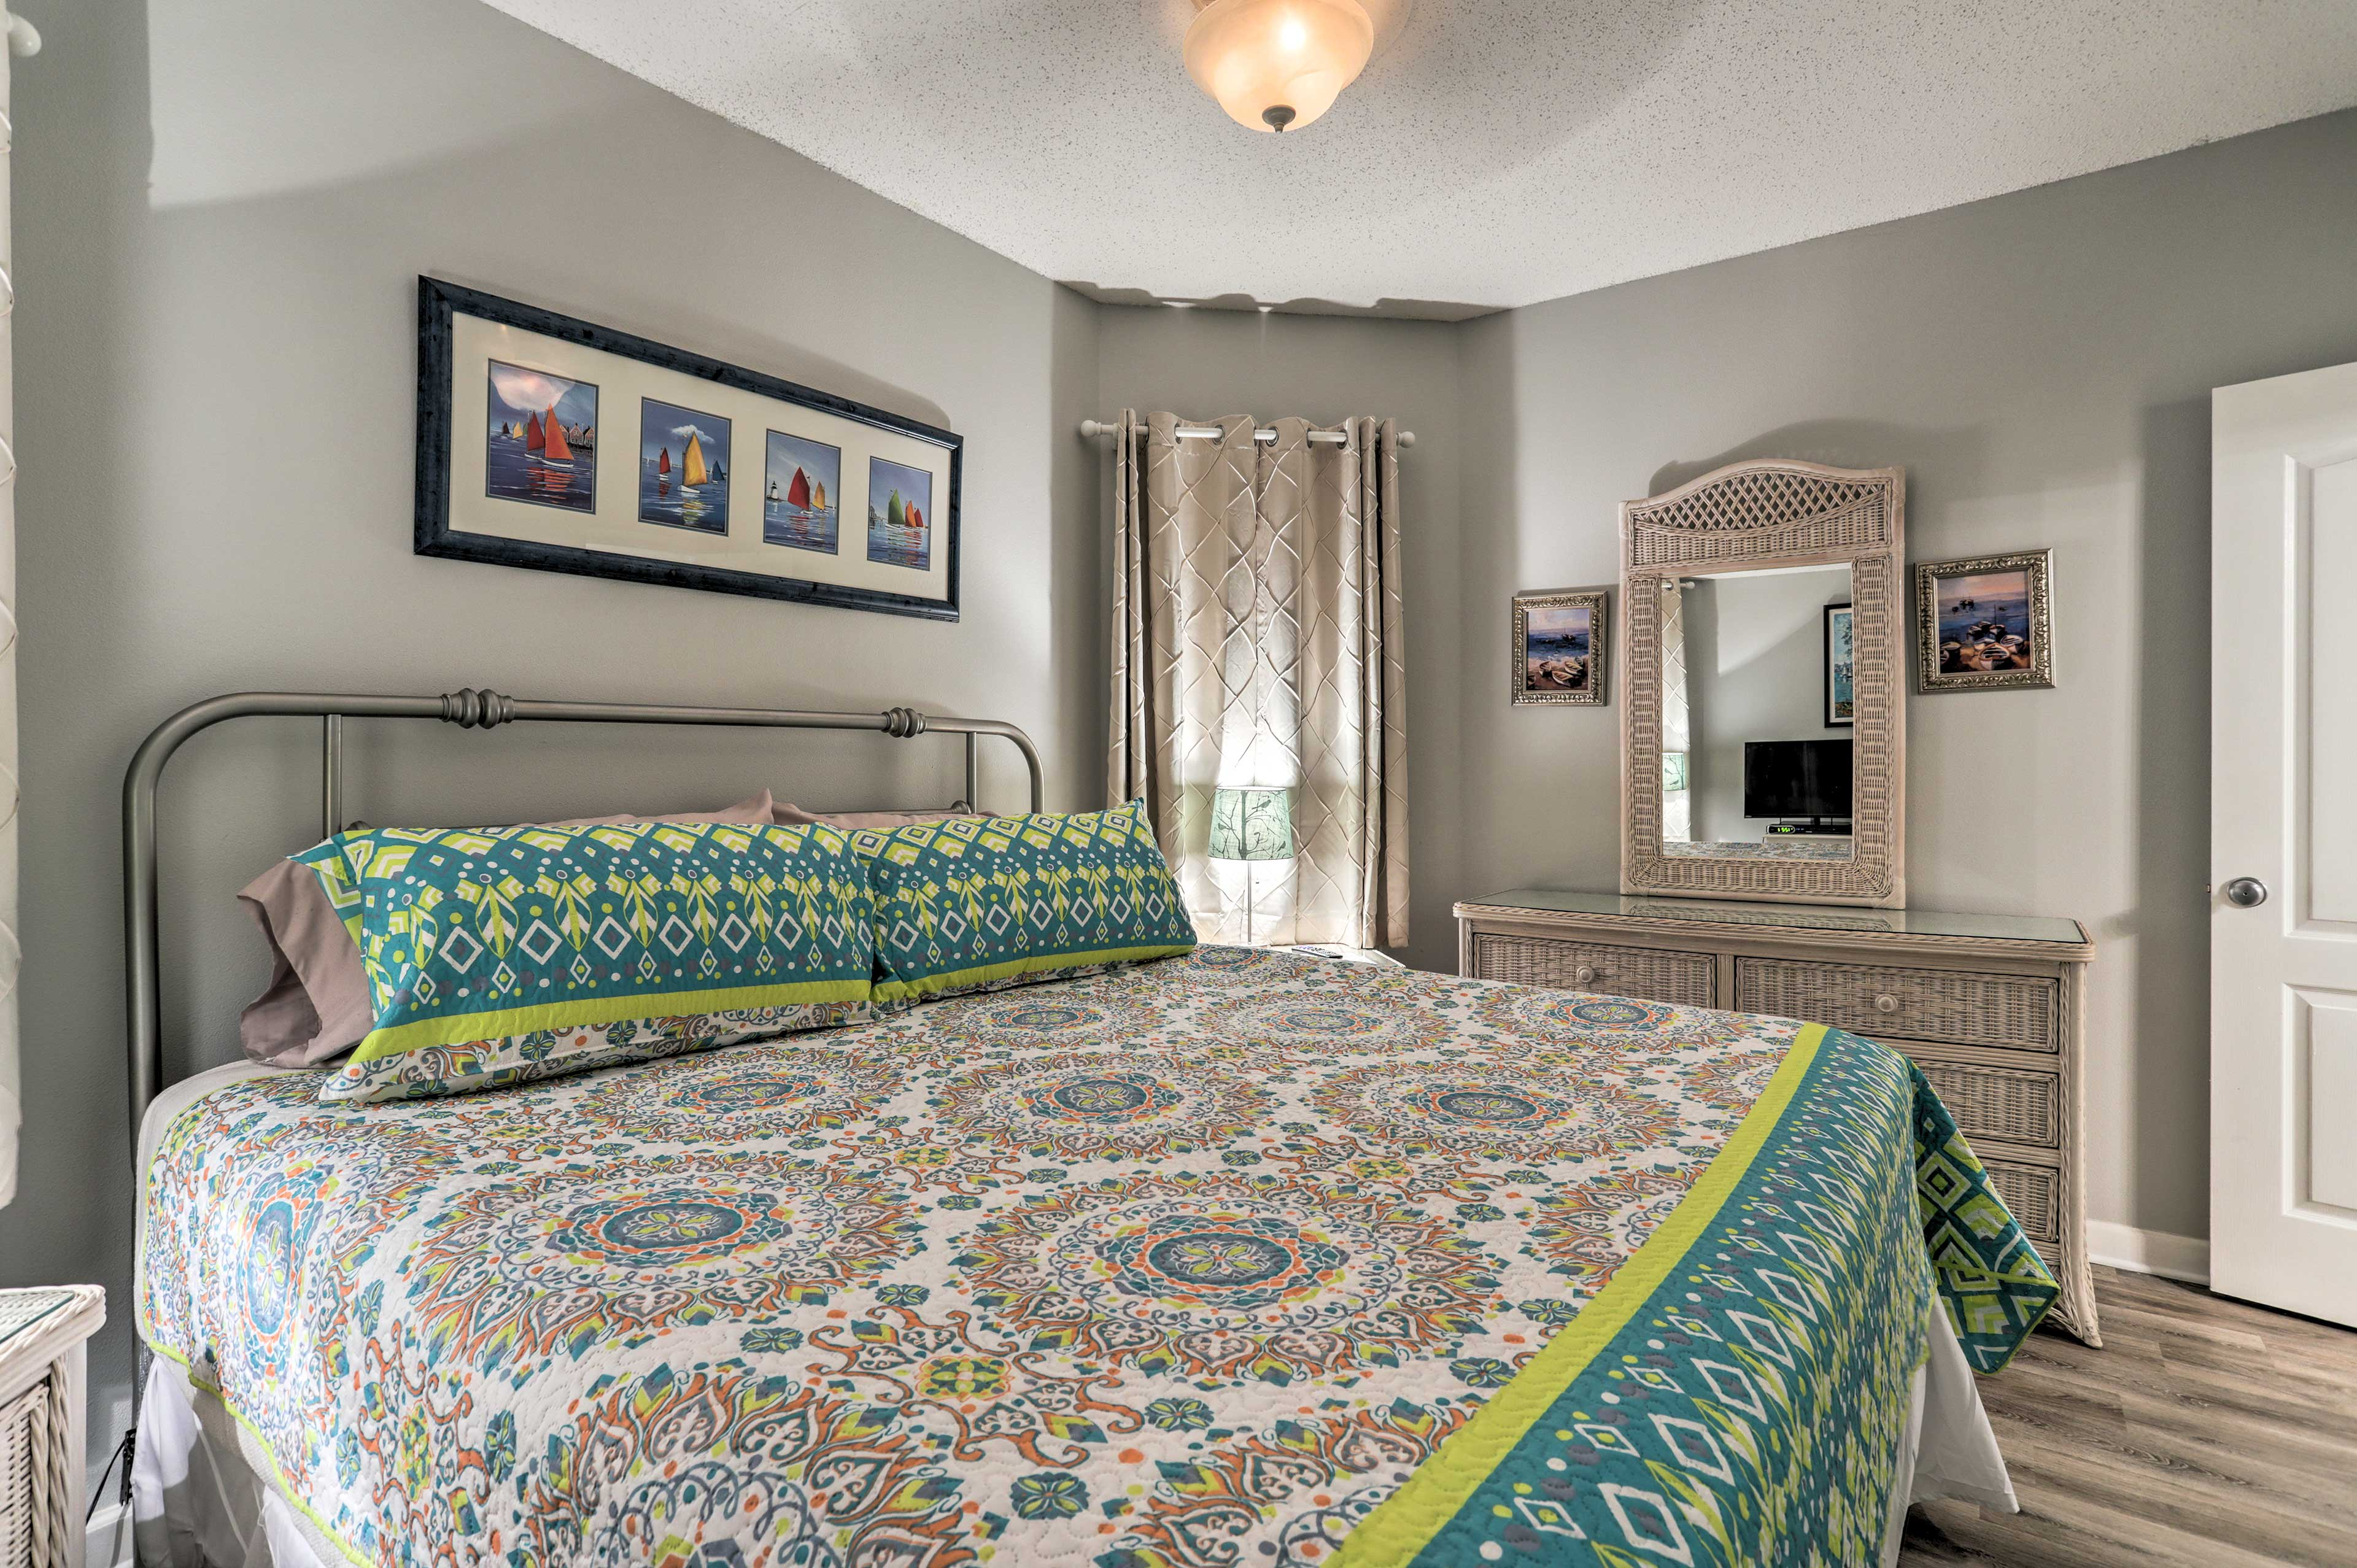 You're sure to sleep soundly on the king bed in the second bedroom.